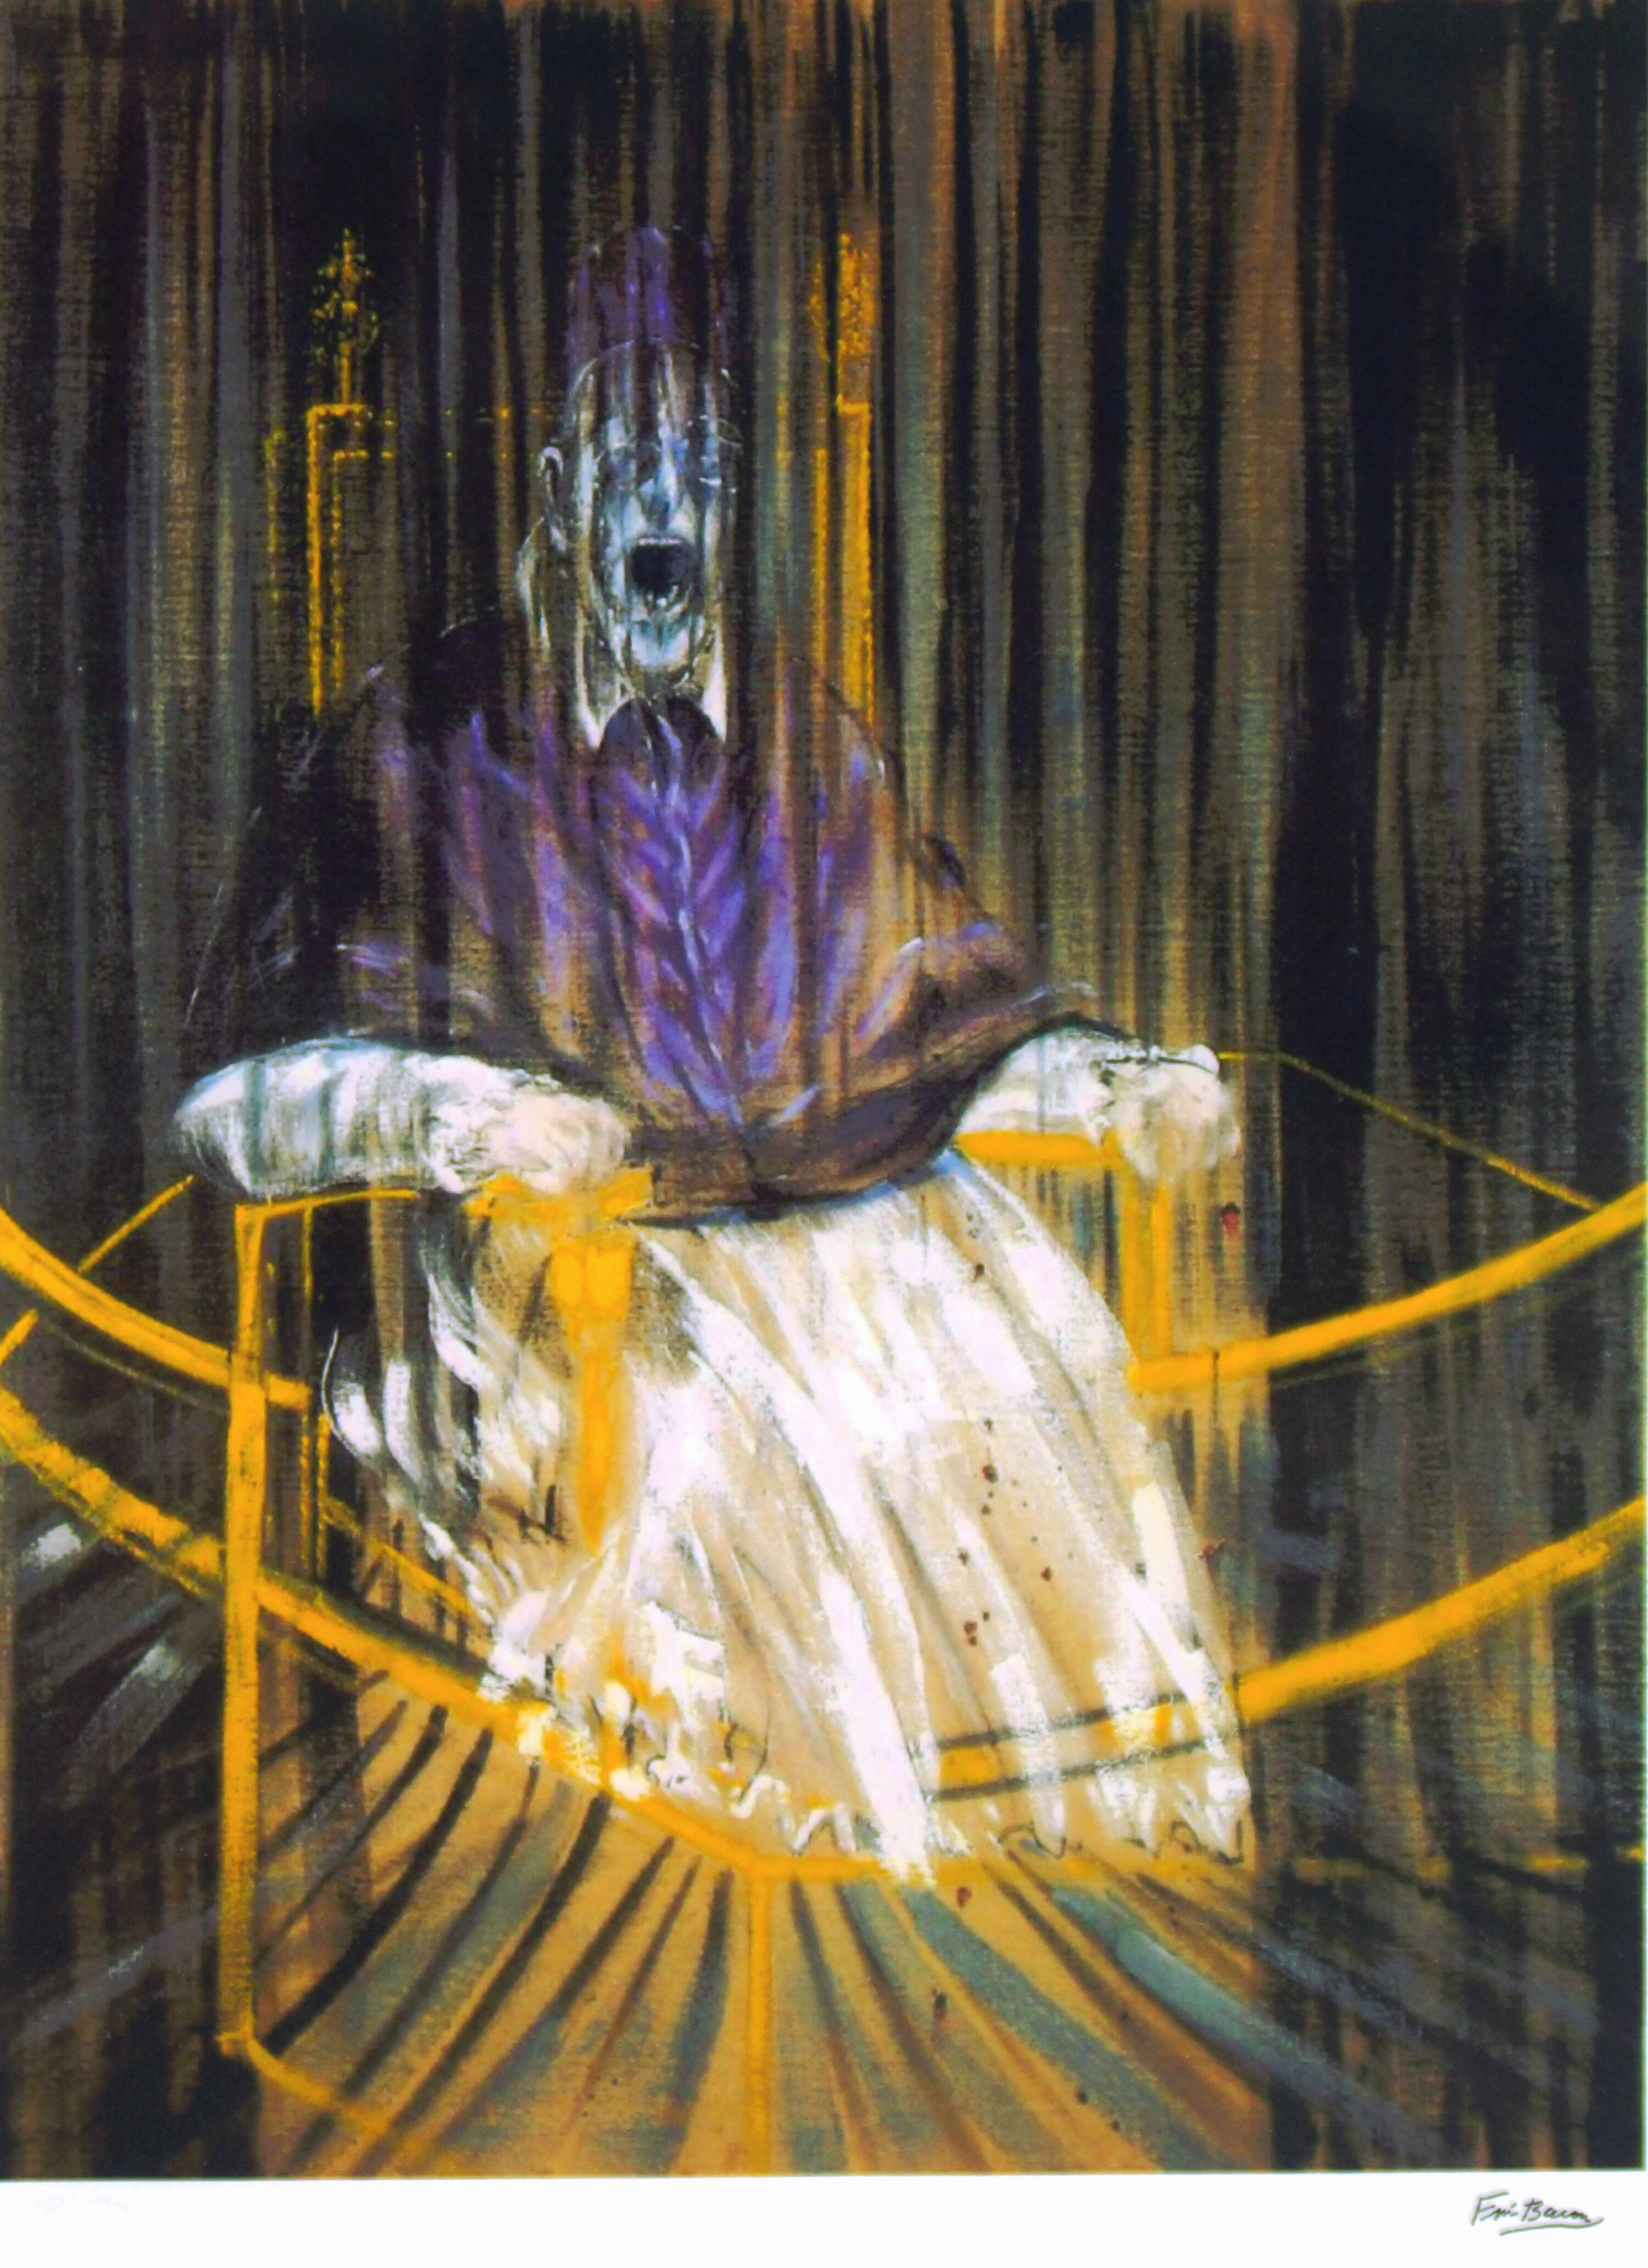 FRANCIS BACON - 'Pope Innocent'